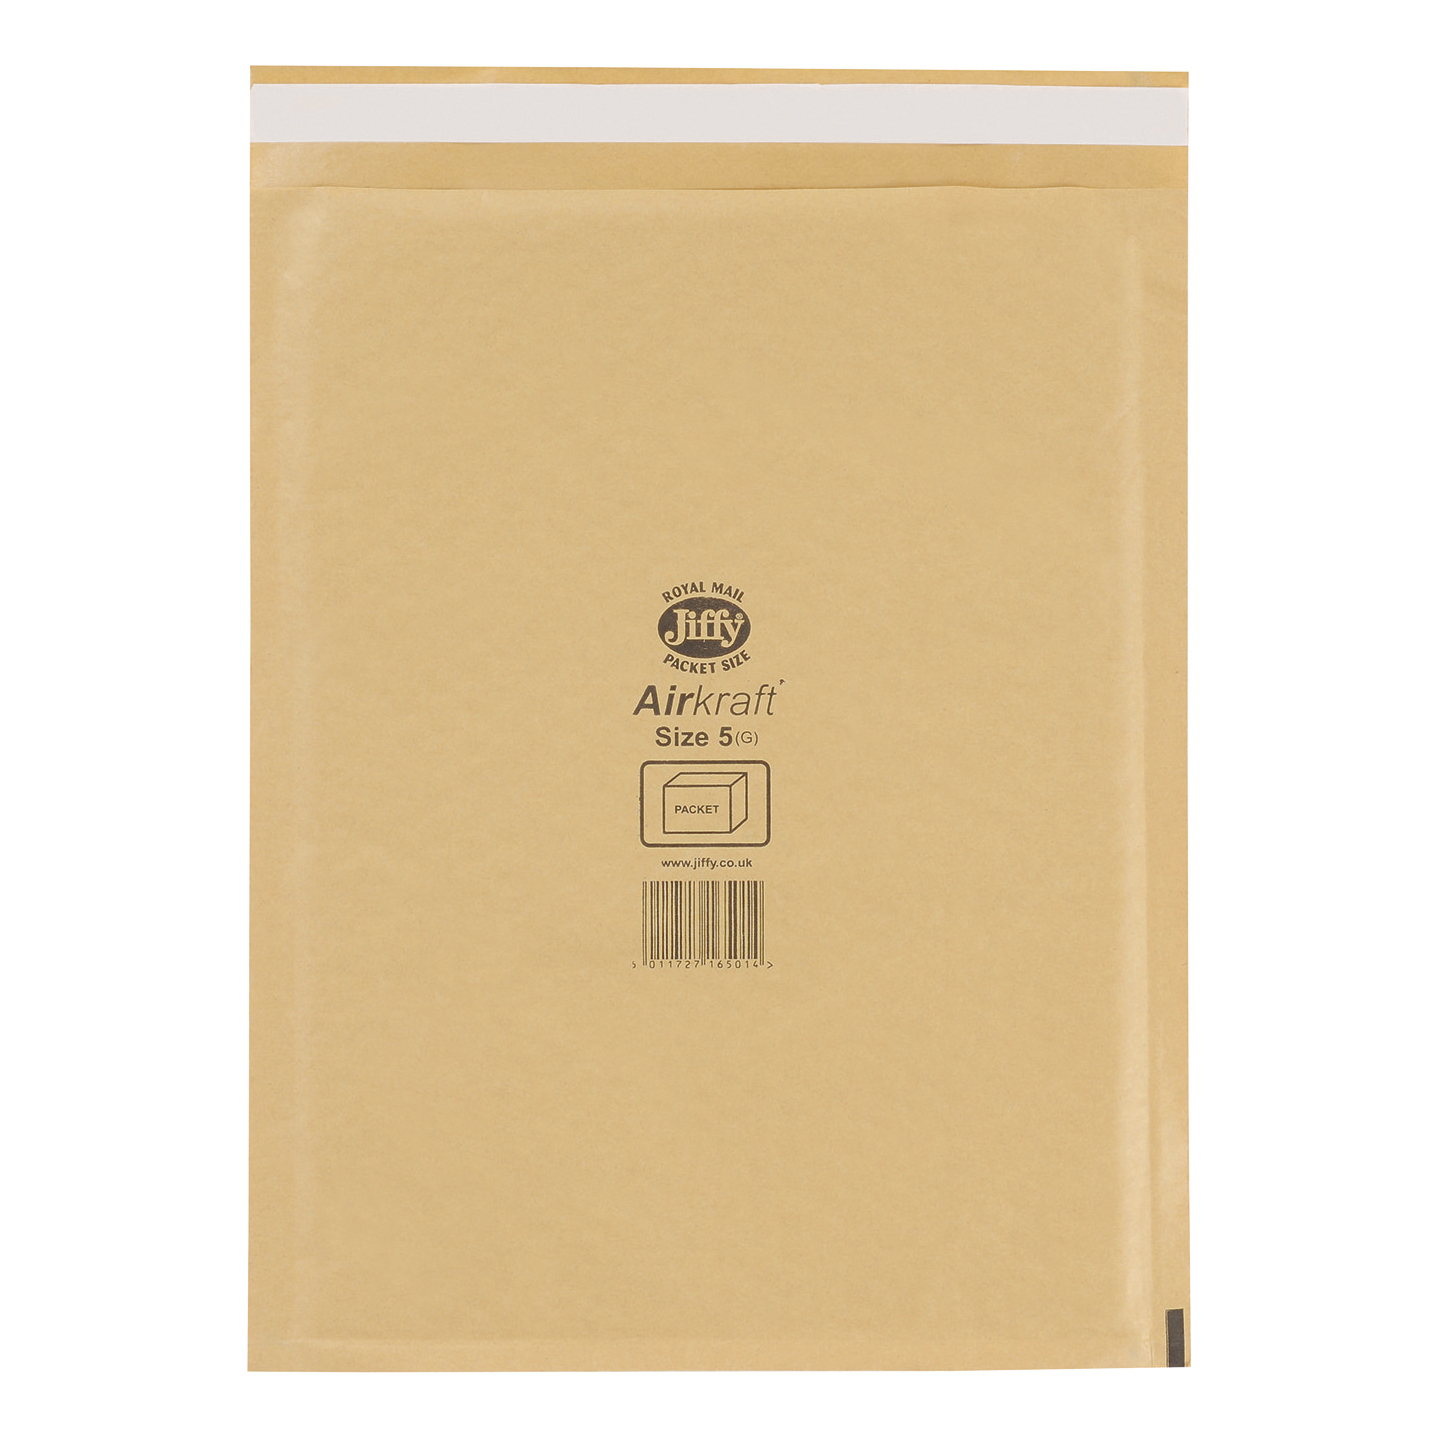 Padded Bags & Envelopes Jiffy Airkraft Bubble Bag Envelopes Size 5 Gold 260x345mm Ref JL-GO-5 [Pack 50]